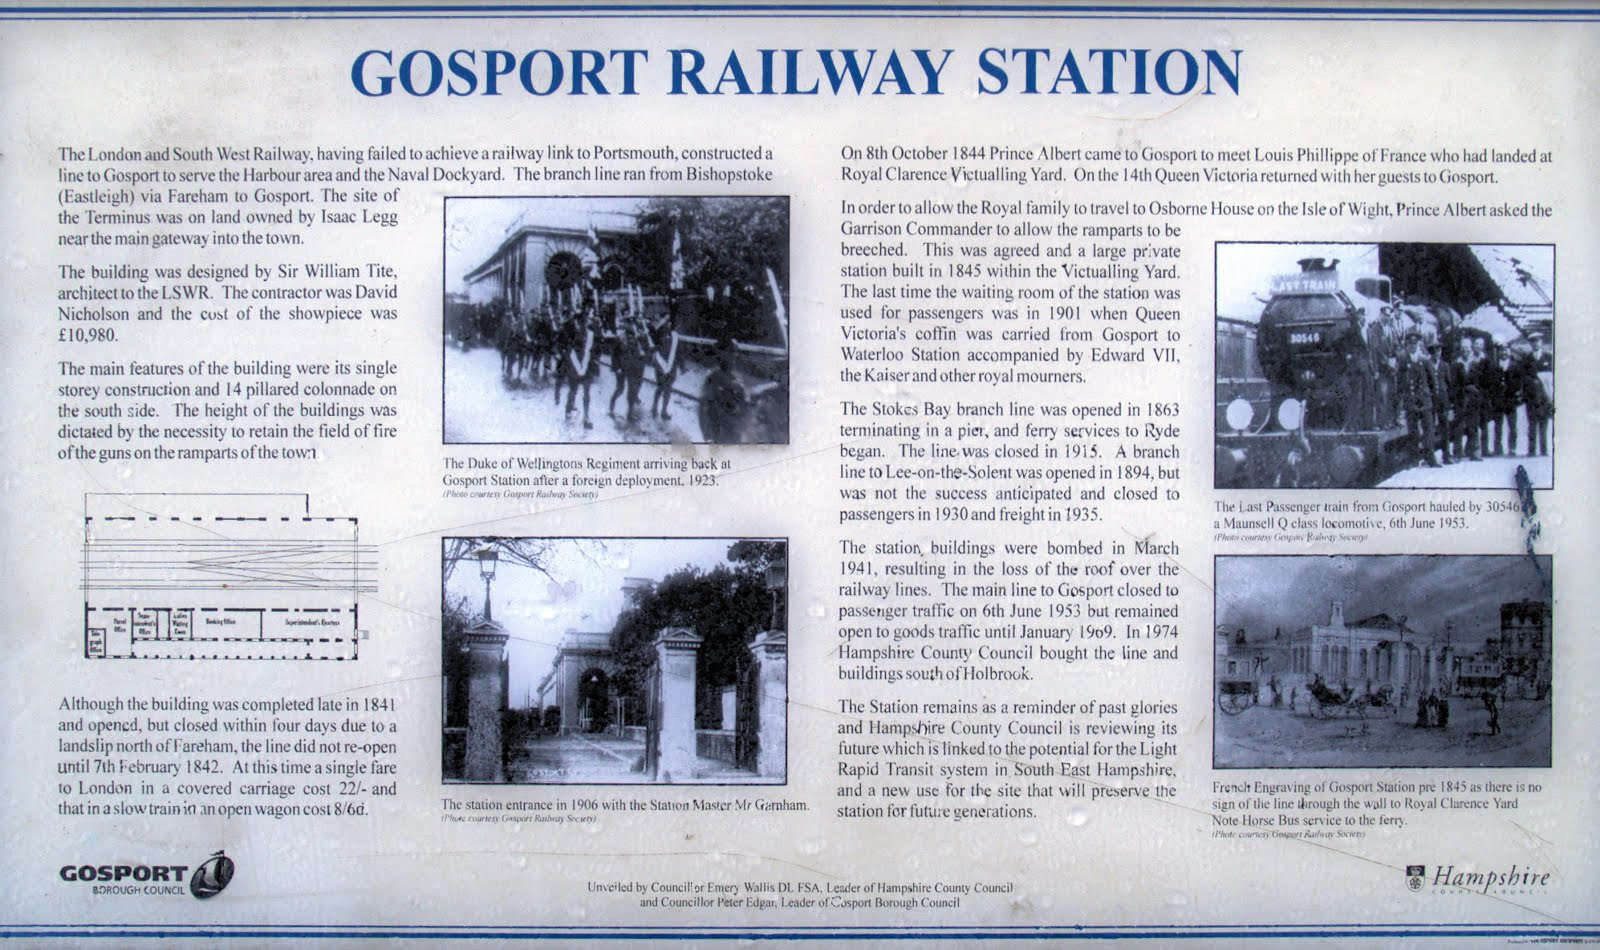 Gosport display board